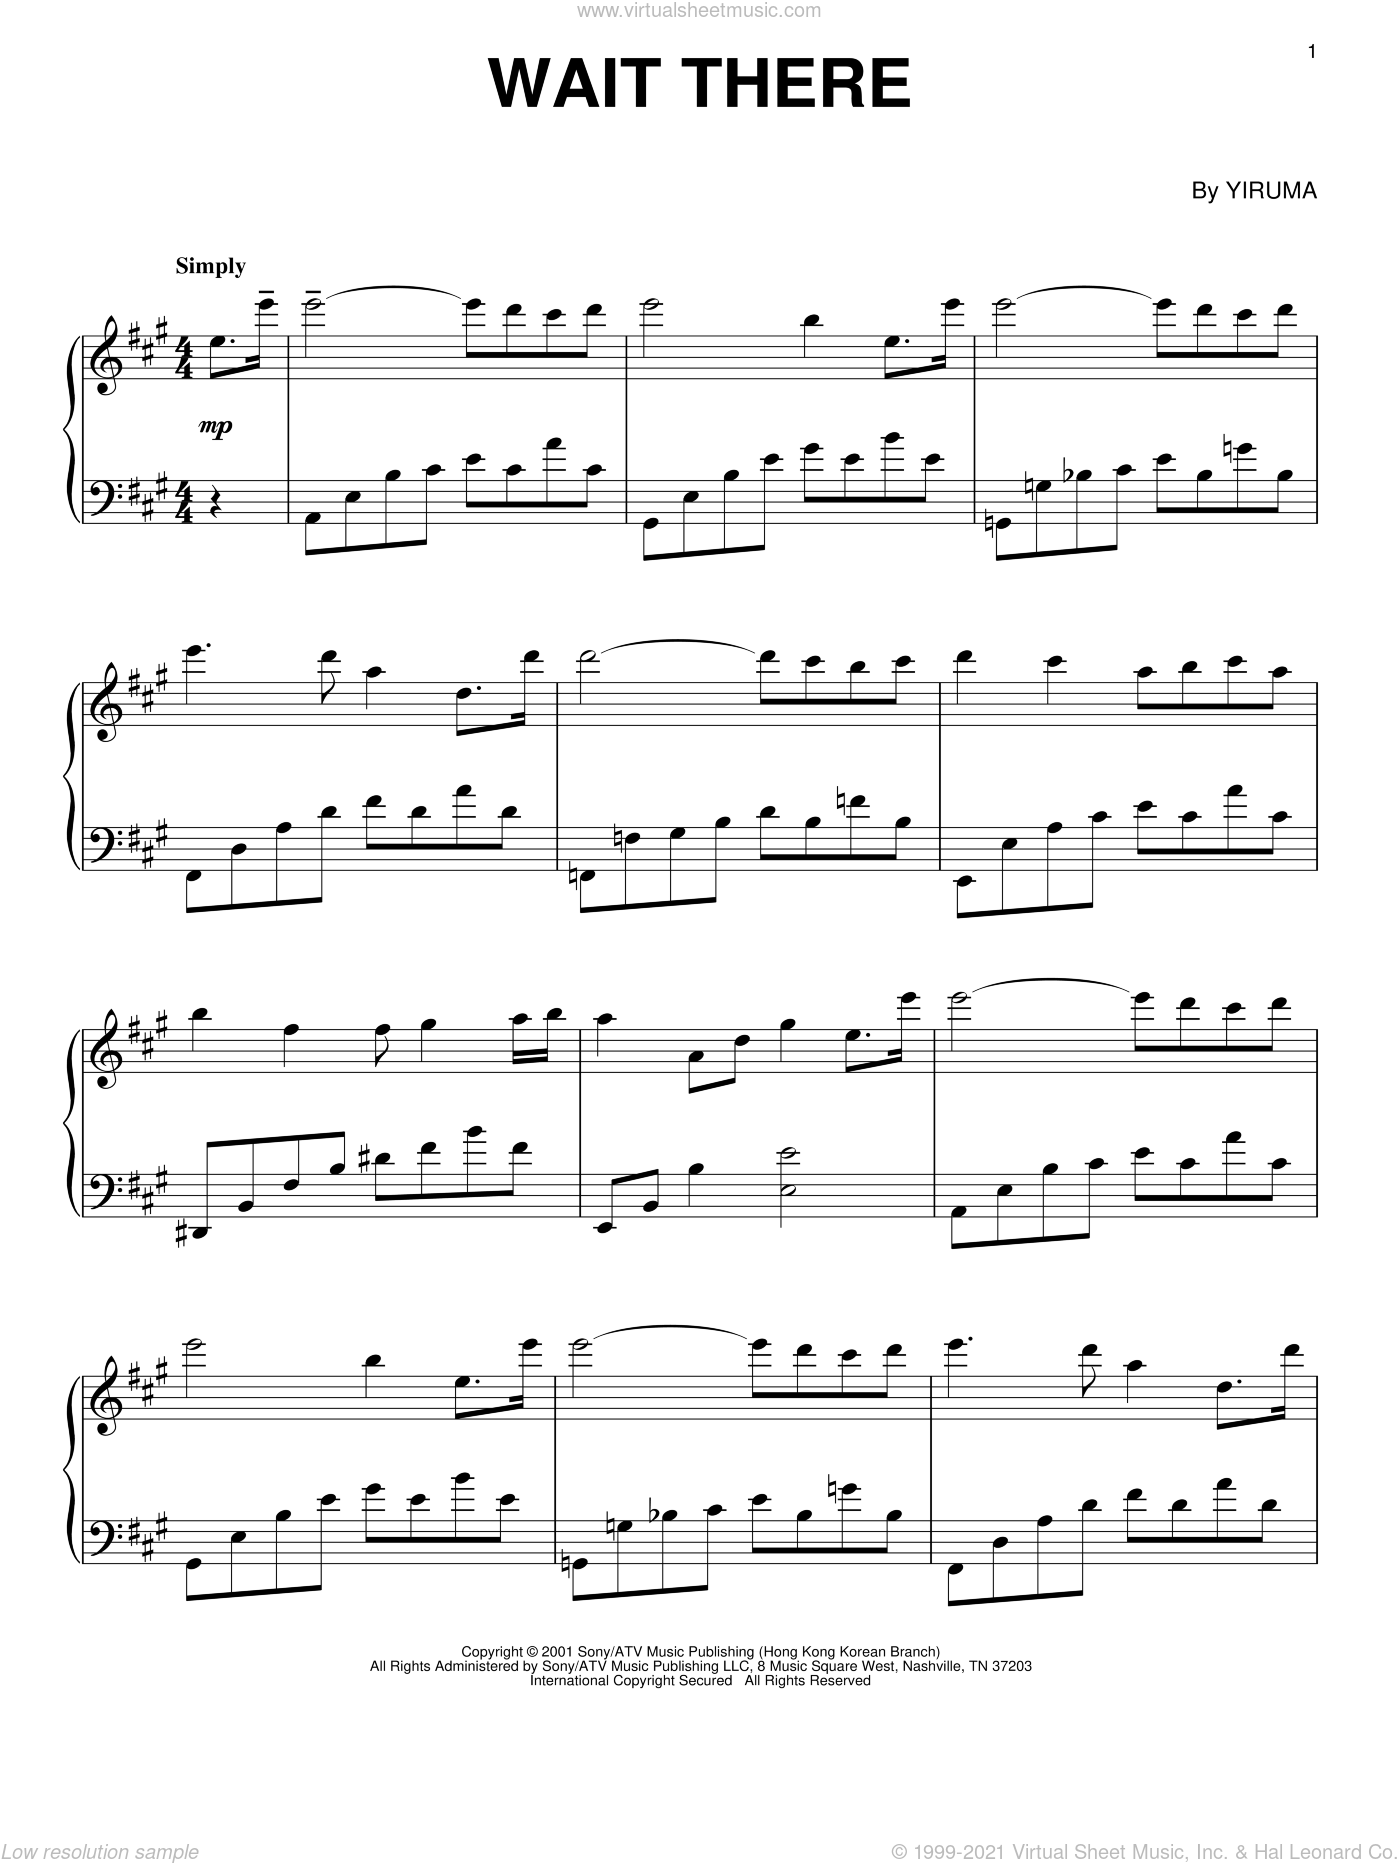 Wait There sheet music for piano solo by Yiruma, classical score, intermediate skill level